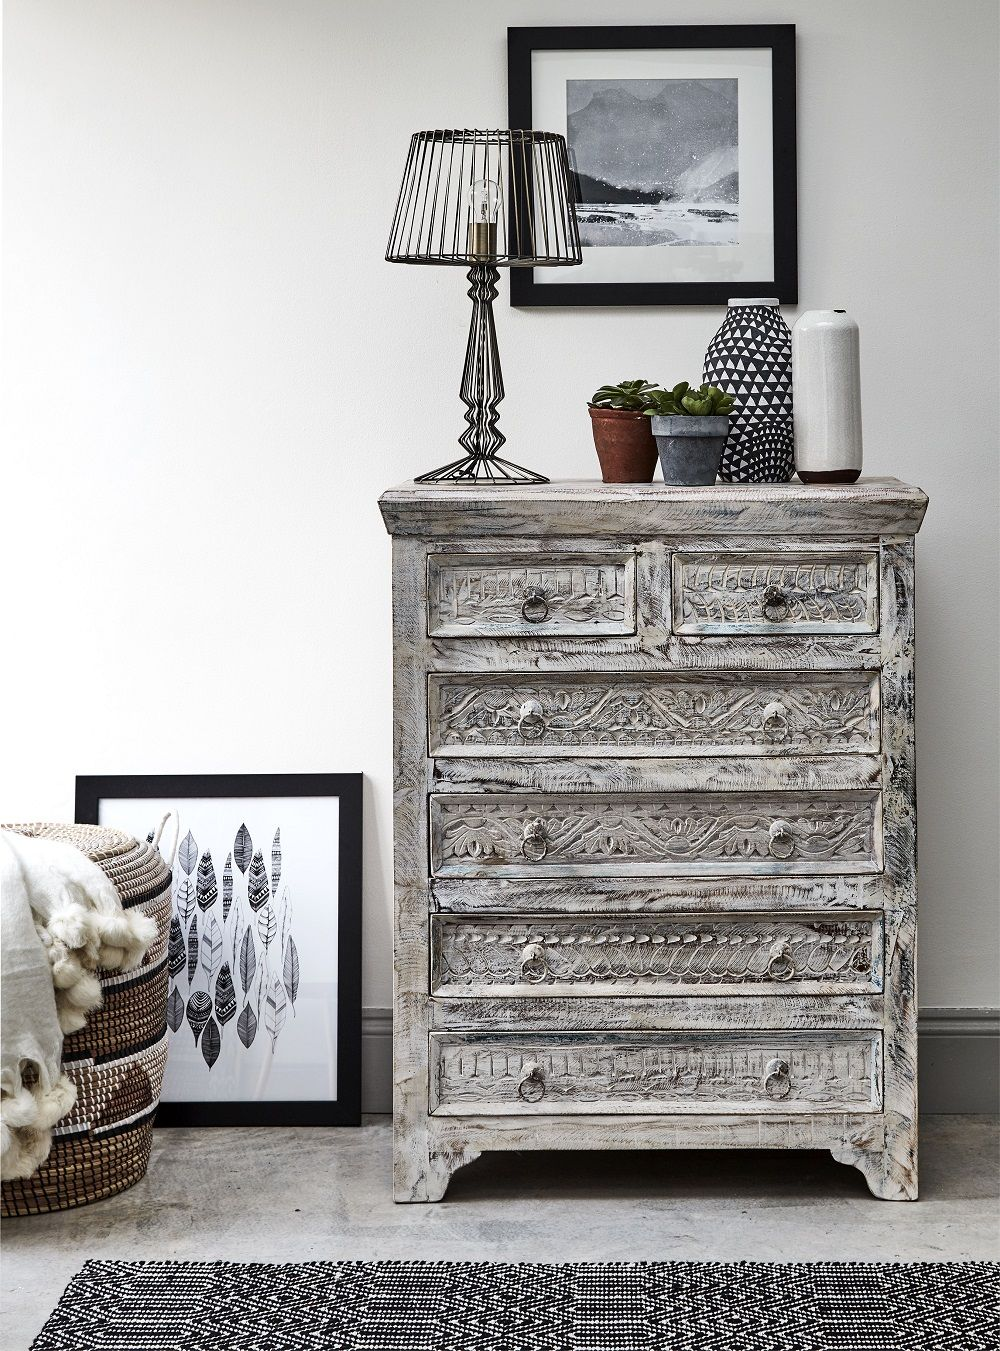 Nordicinspired bedroom furniture and chic monochrome details make